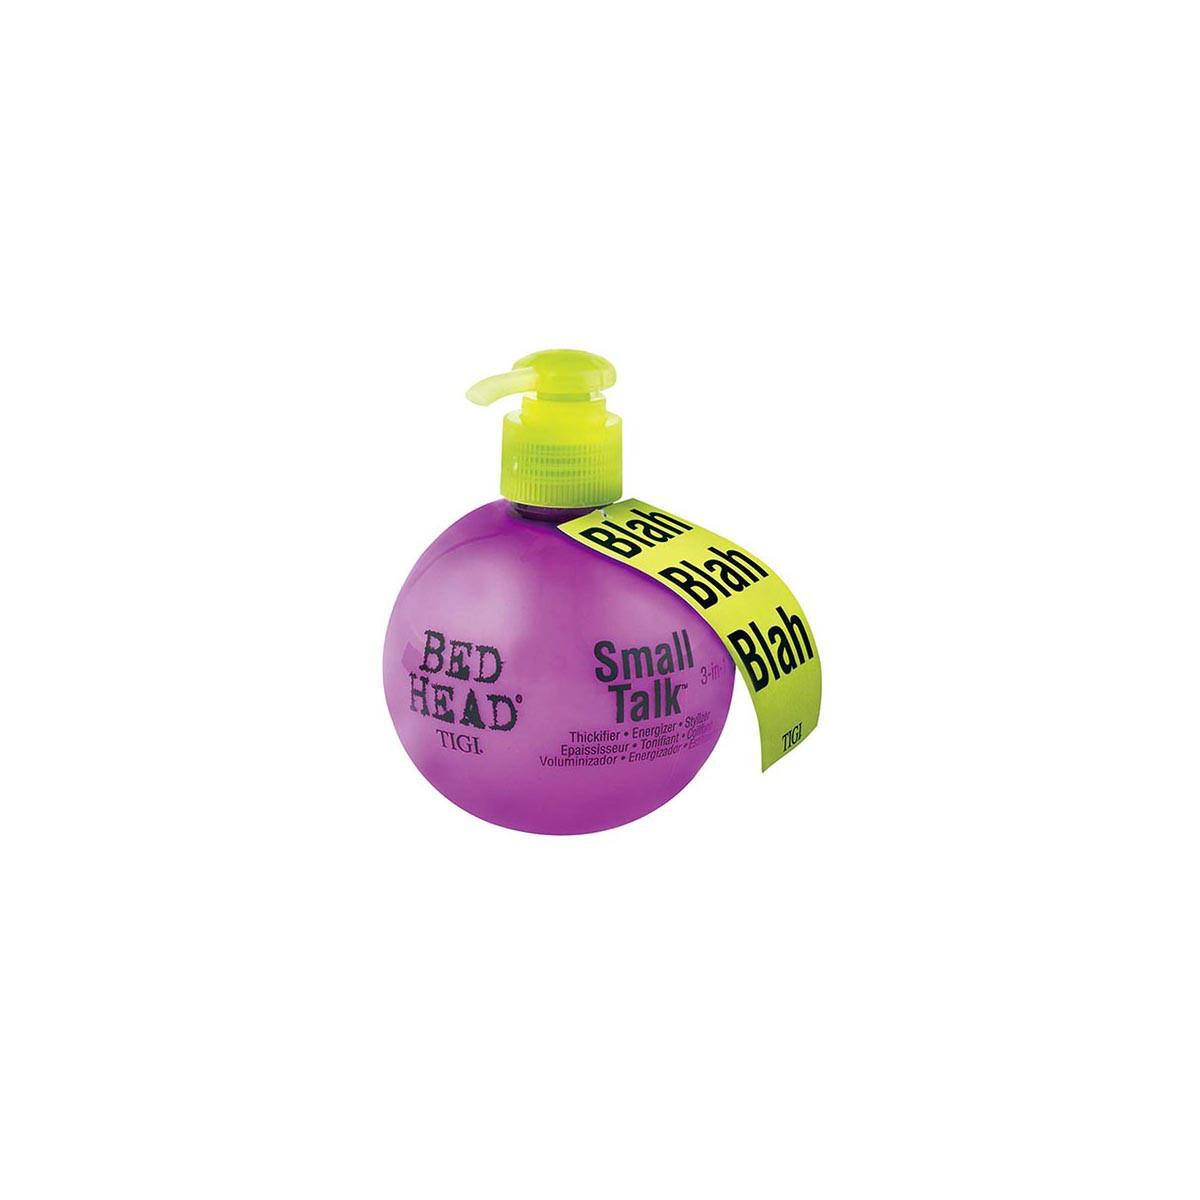 Tigi fragrances Bed Head Small Talk Cream 3 En 1 200ml